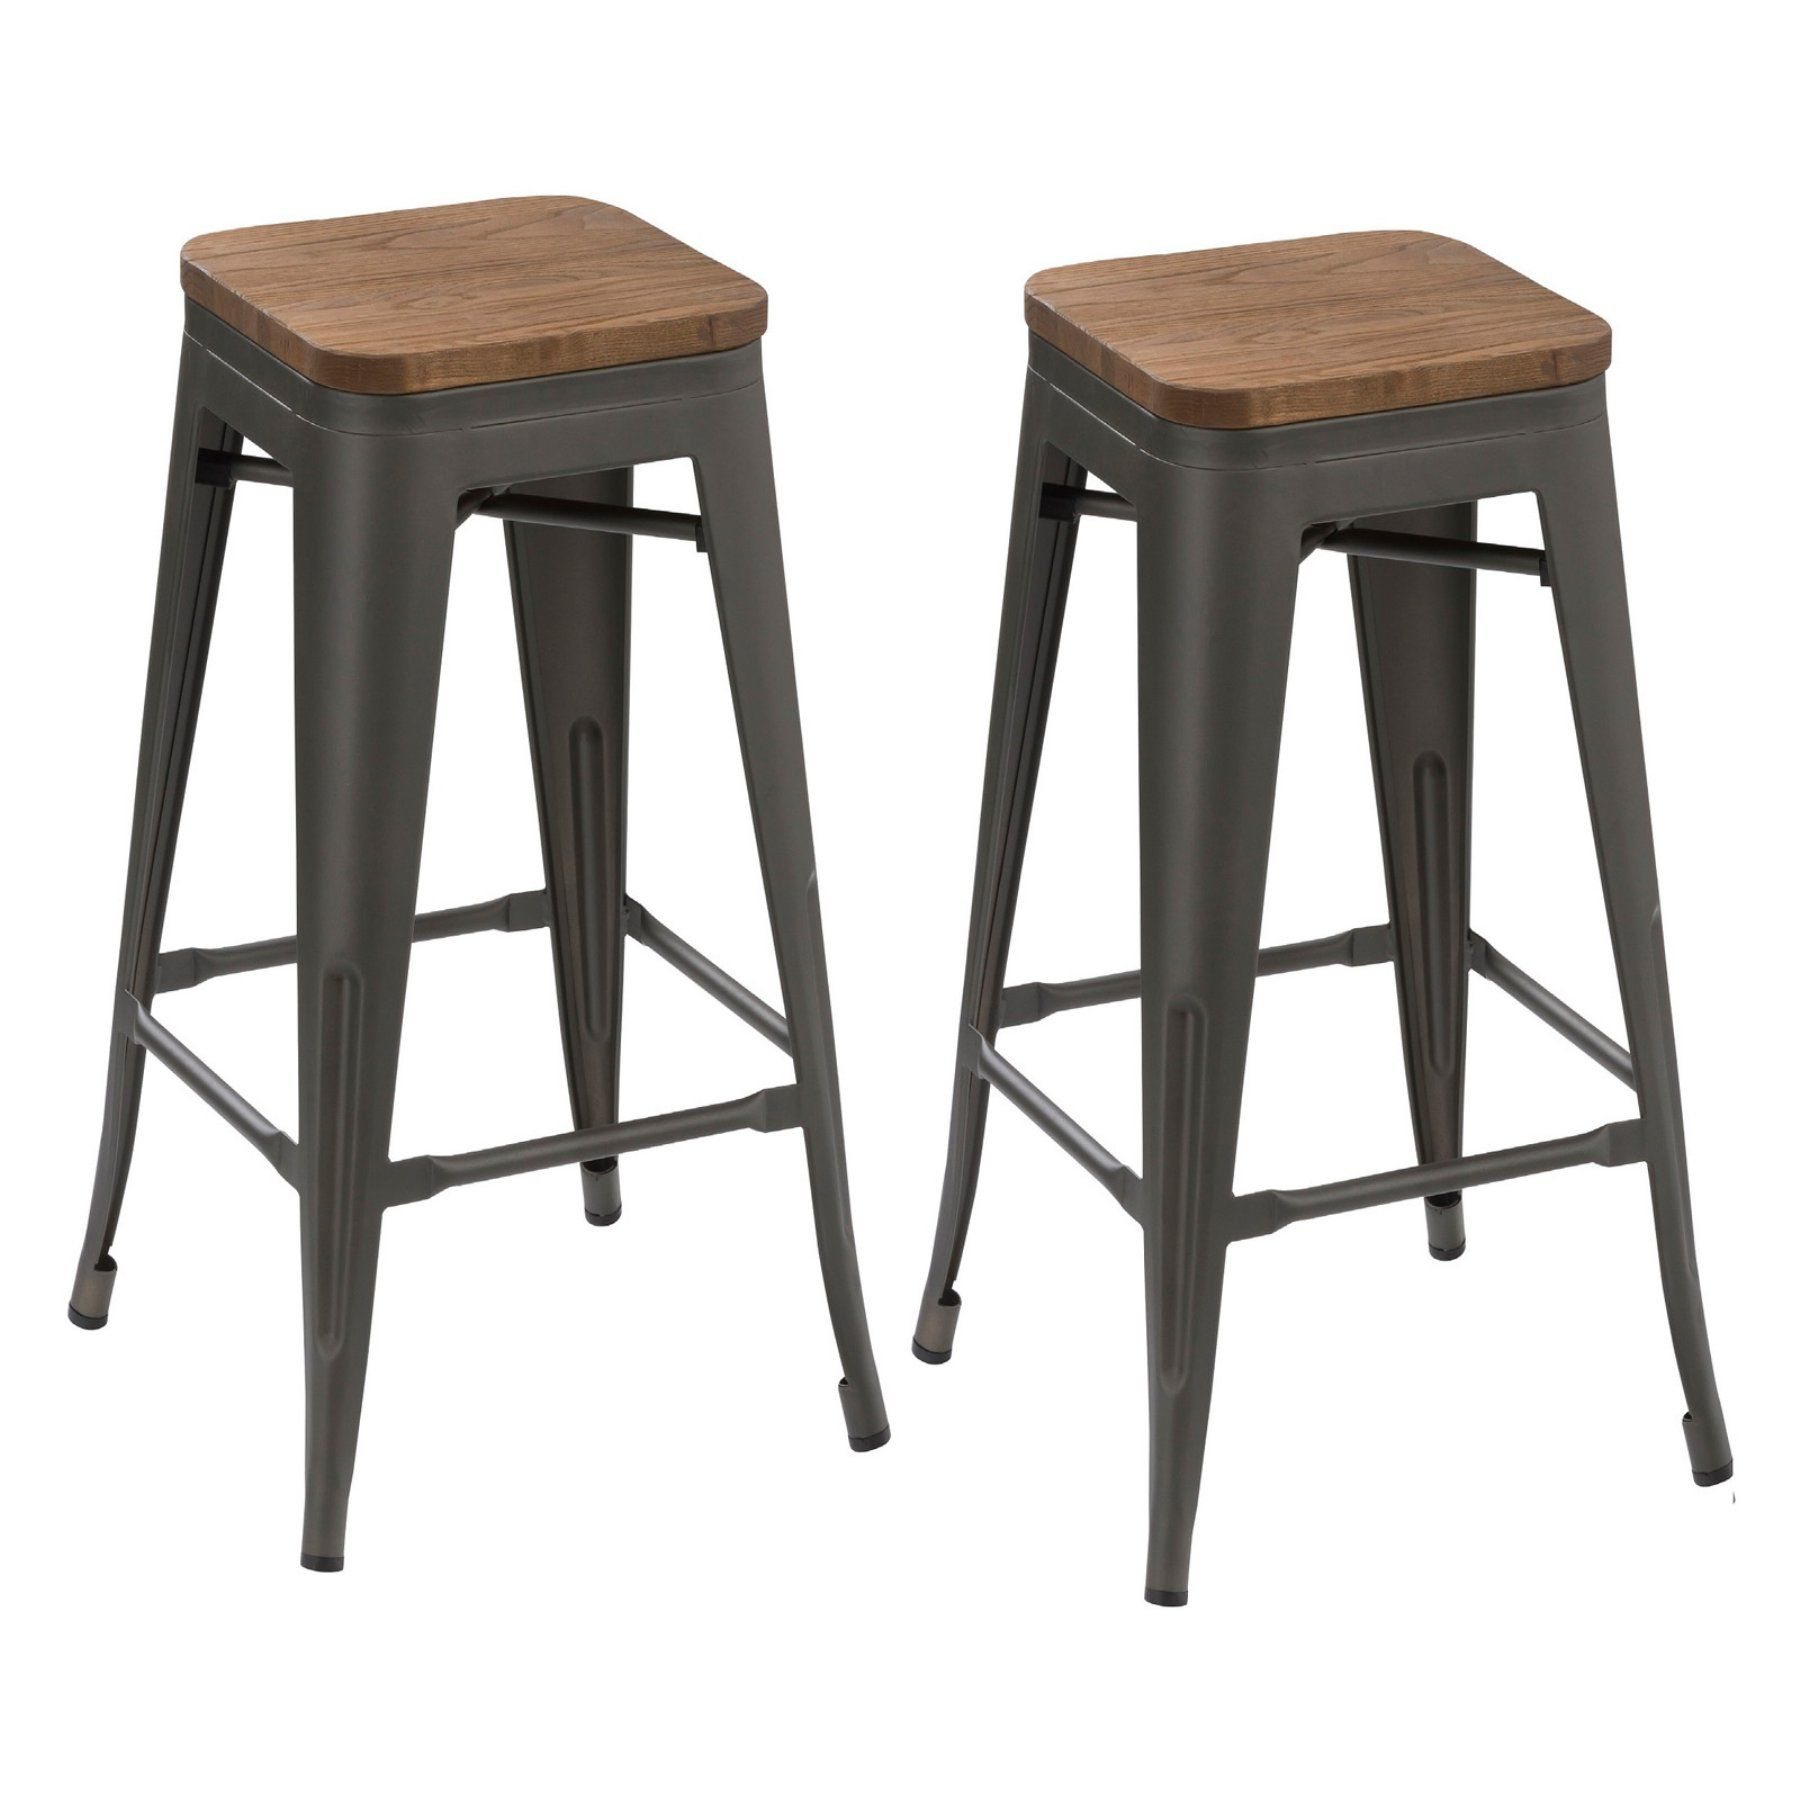 Btexpert Industrial 30 In Metal And Wood Backless Barstool